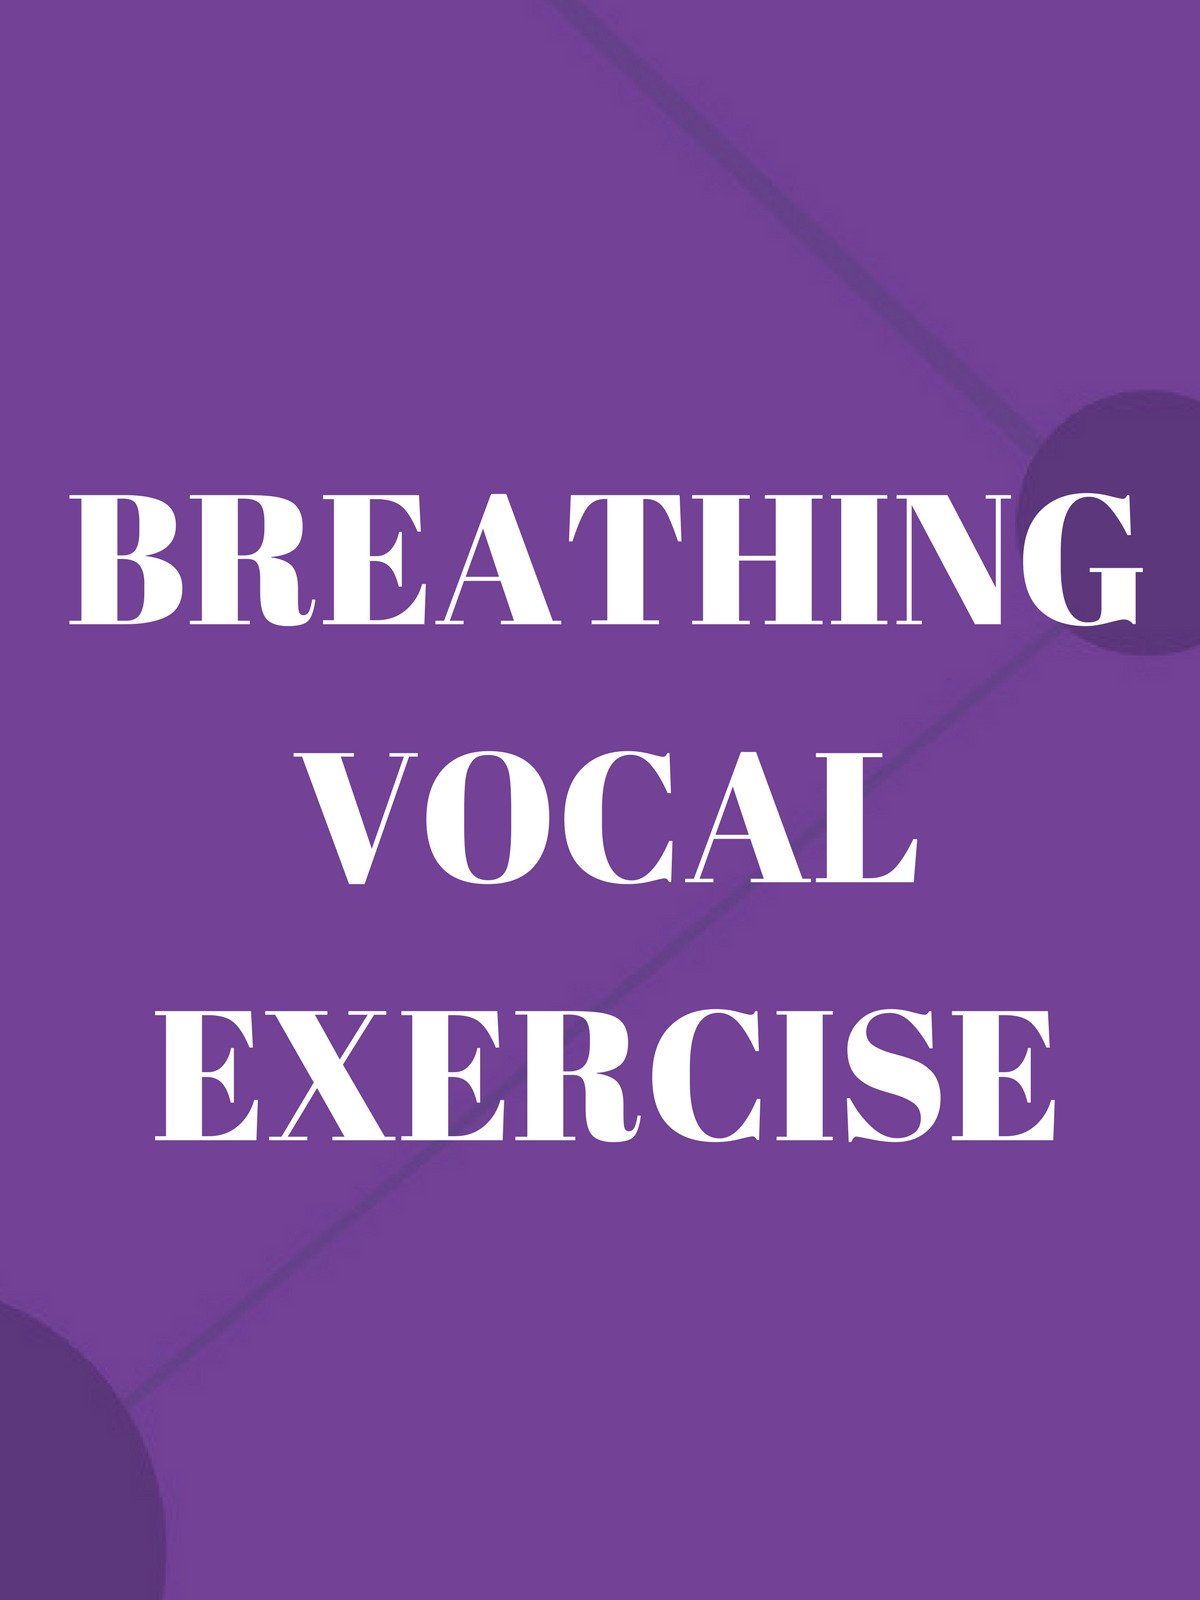 Breathing Vocal Exercise